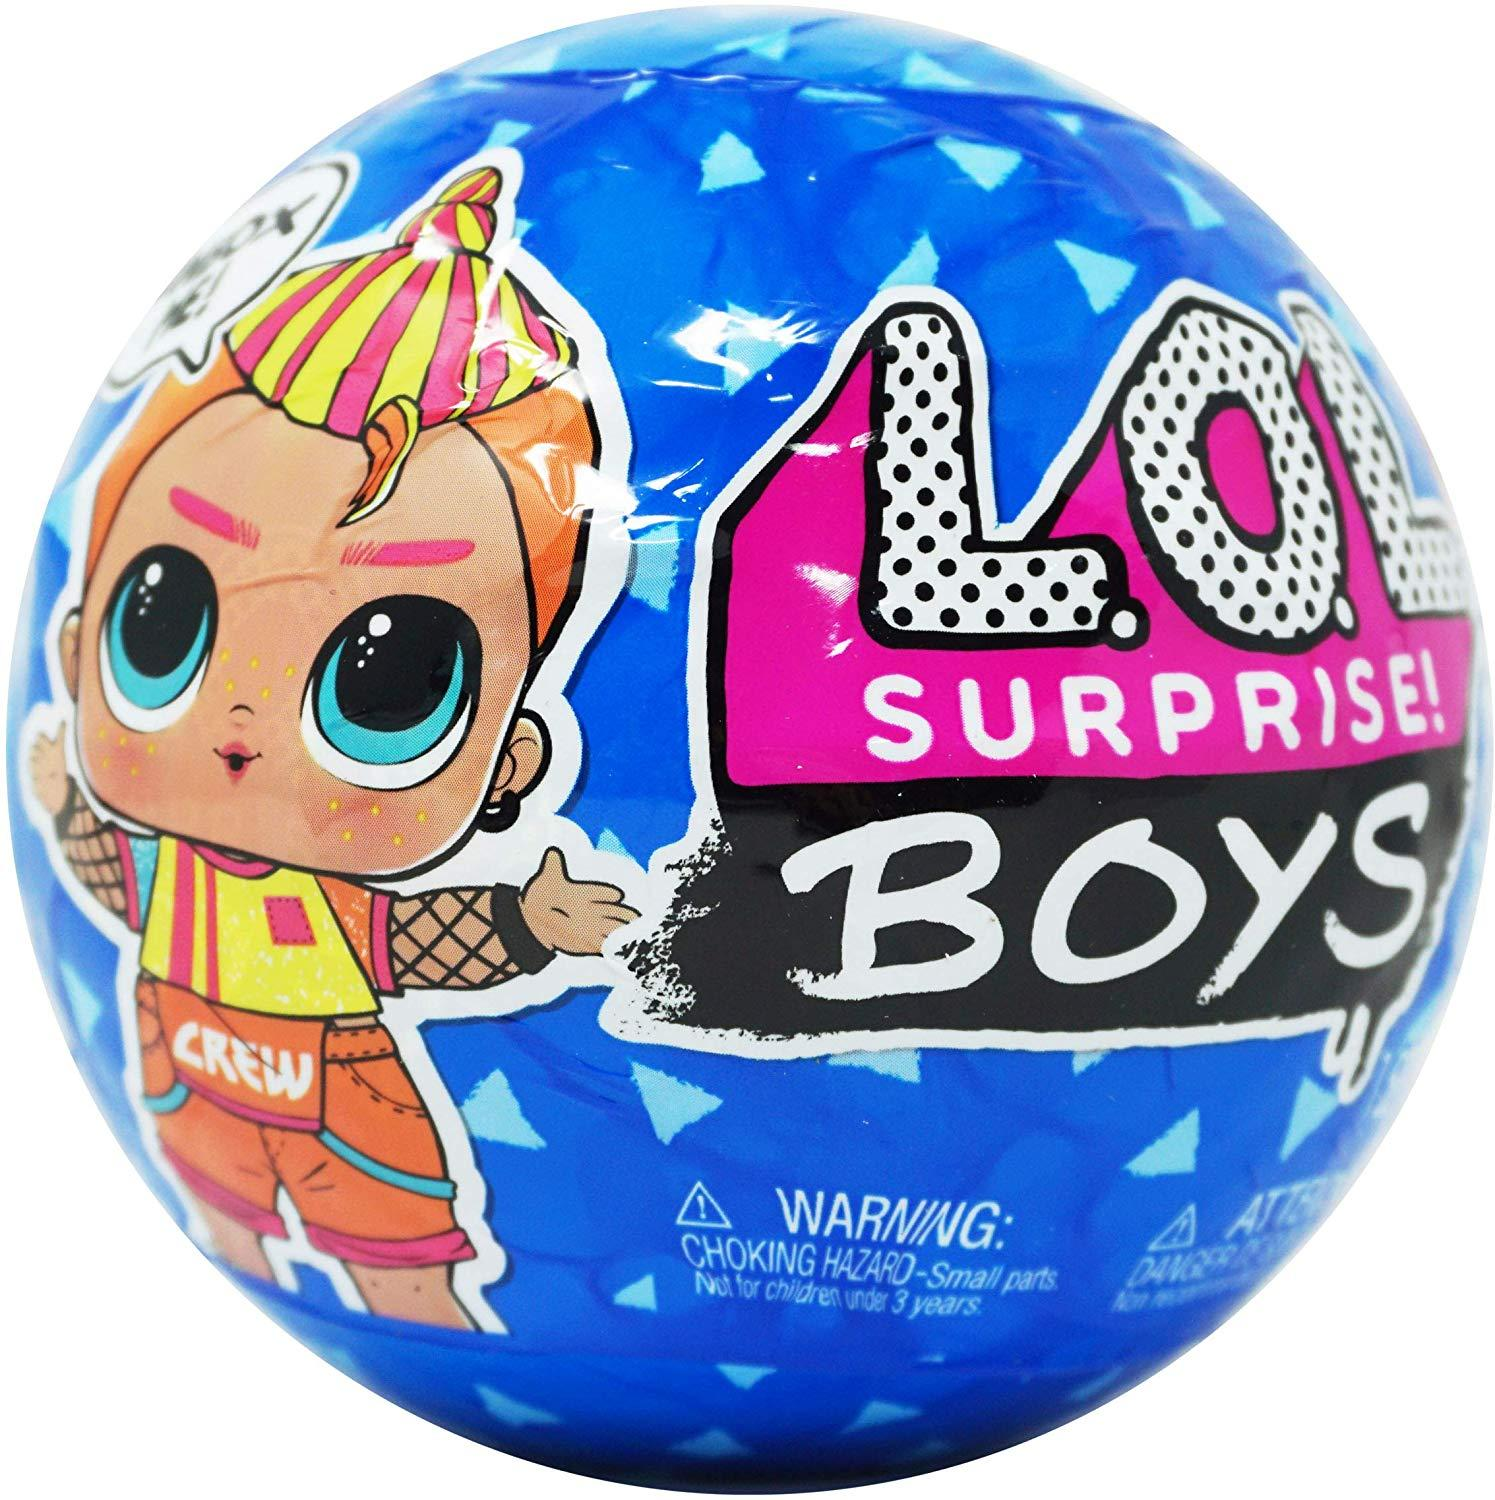 L.O.L. Surprise Boys (LLUC1000)